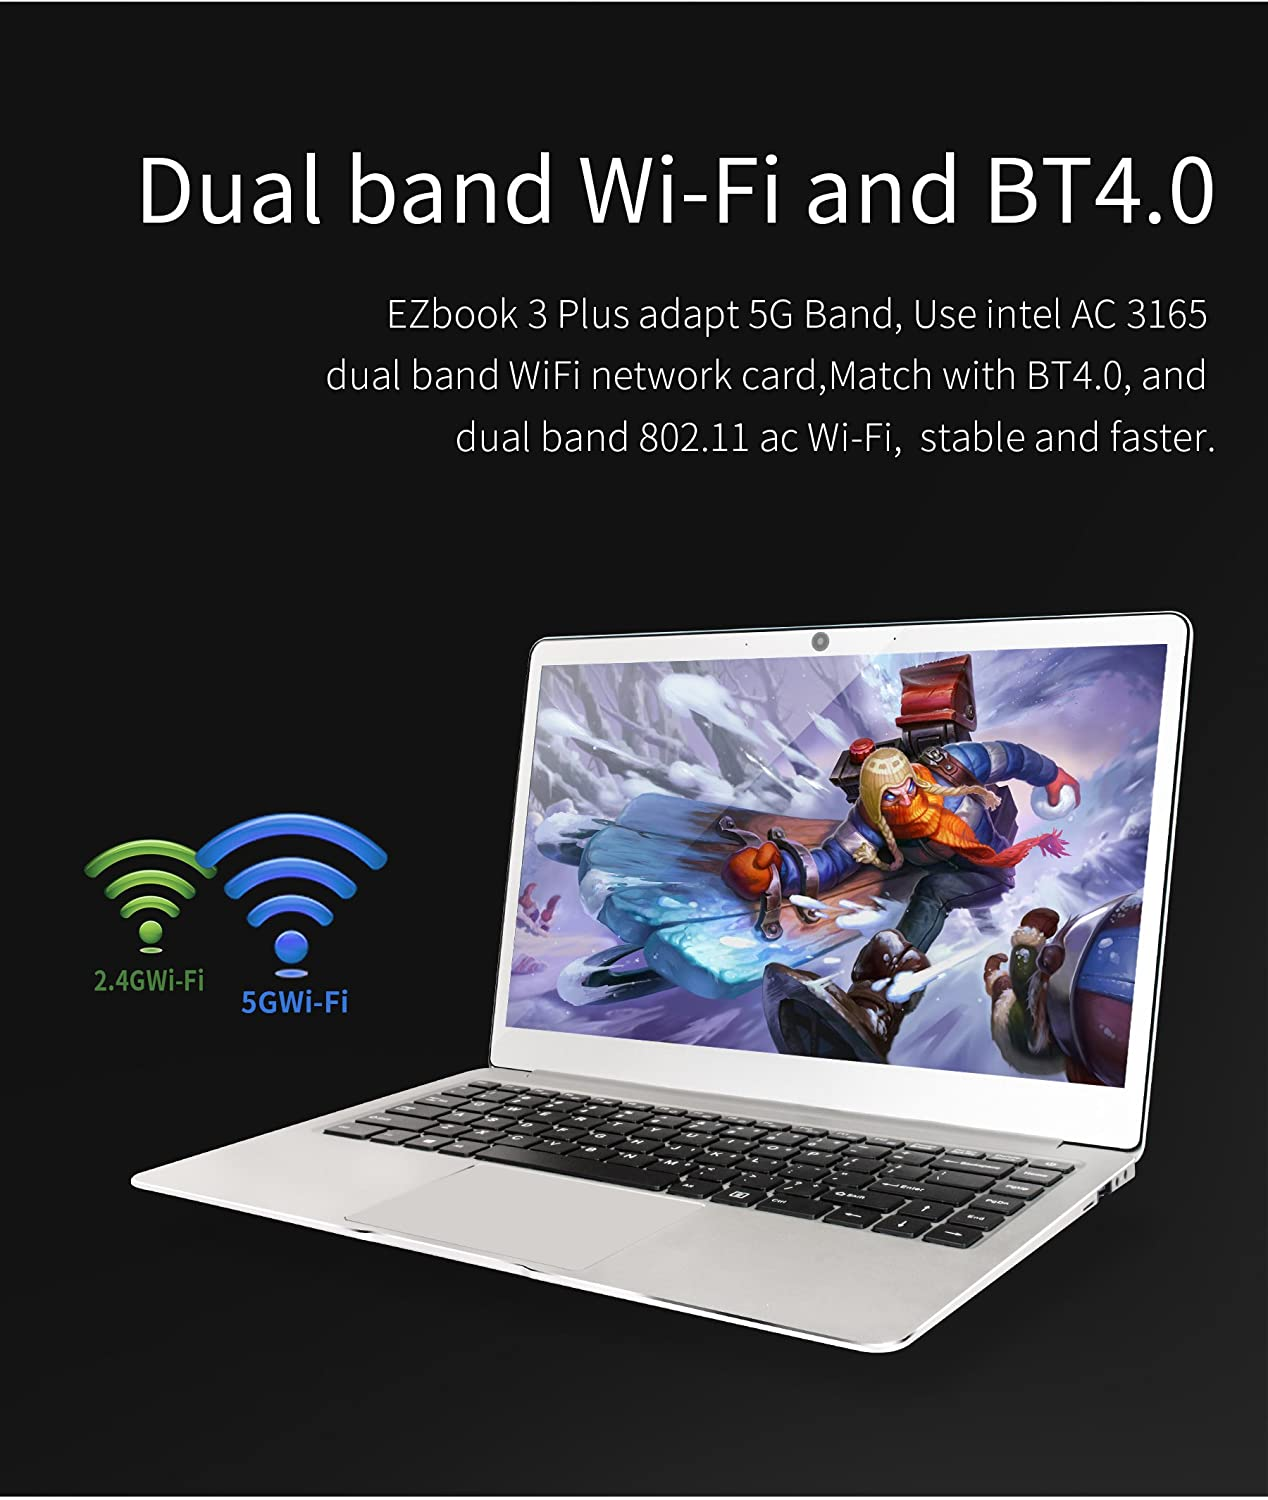 Amazon.com: Jumper EZbook 3 Plus 14 Inch Business Laptop Computer, Intel Core M3-7Y30 Up to 2.6Ghz 8G RAM 128G SSD WiFi 802.11 AC + BT4.0 Full Metal Case ...